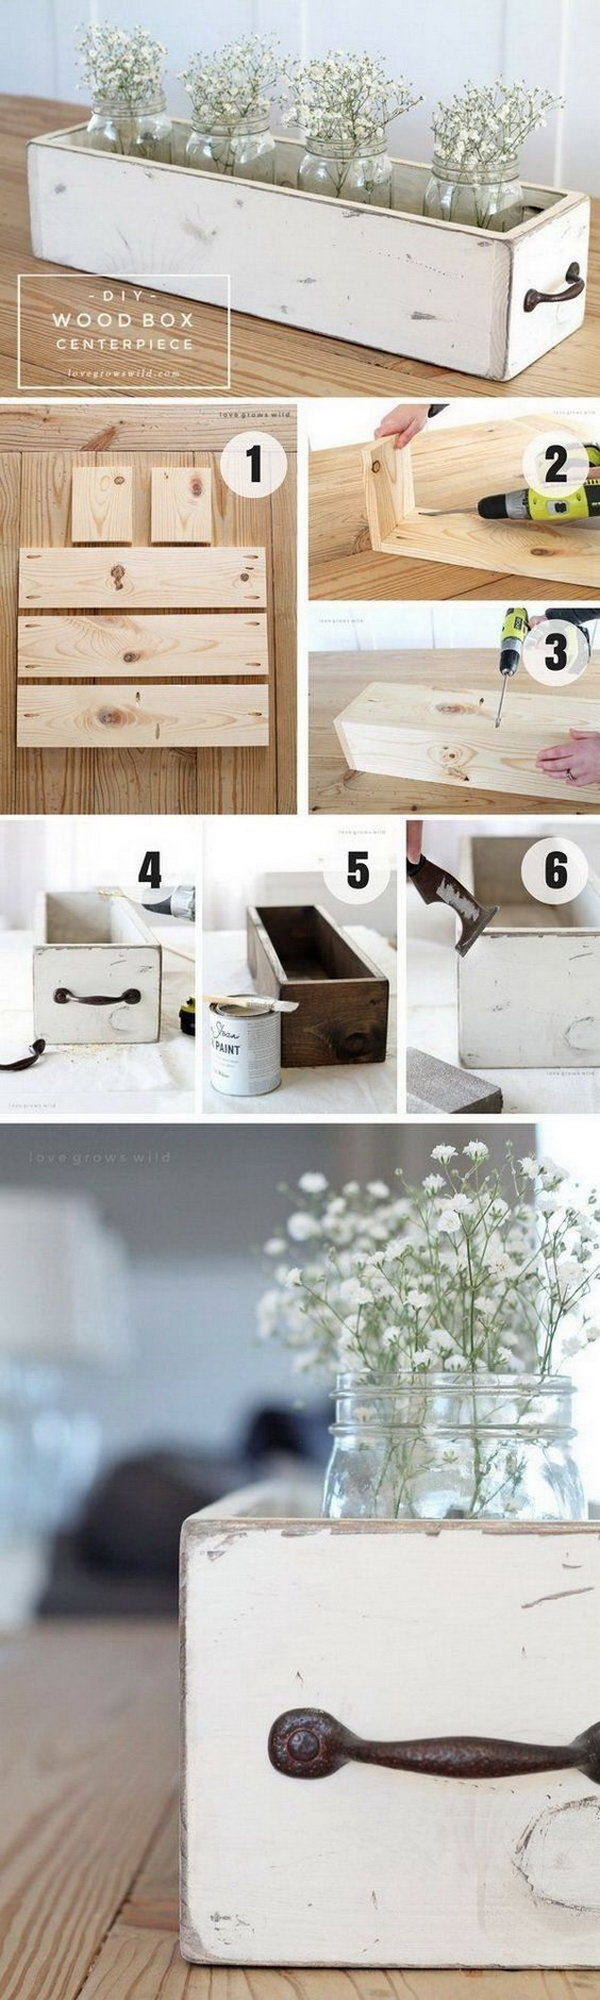 DIY Wood Box Centerpiece.